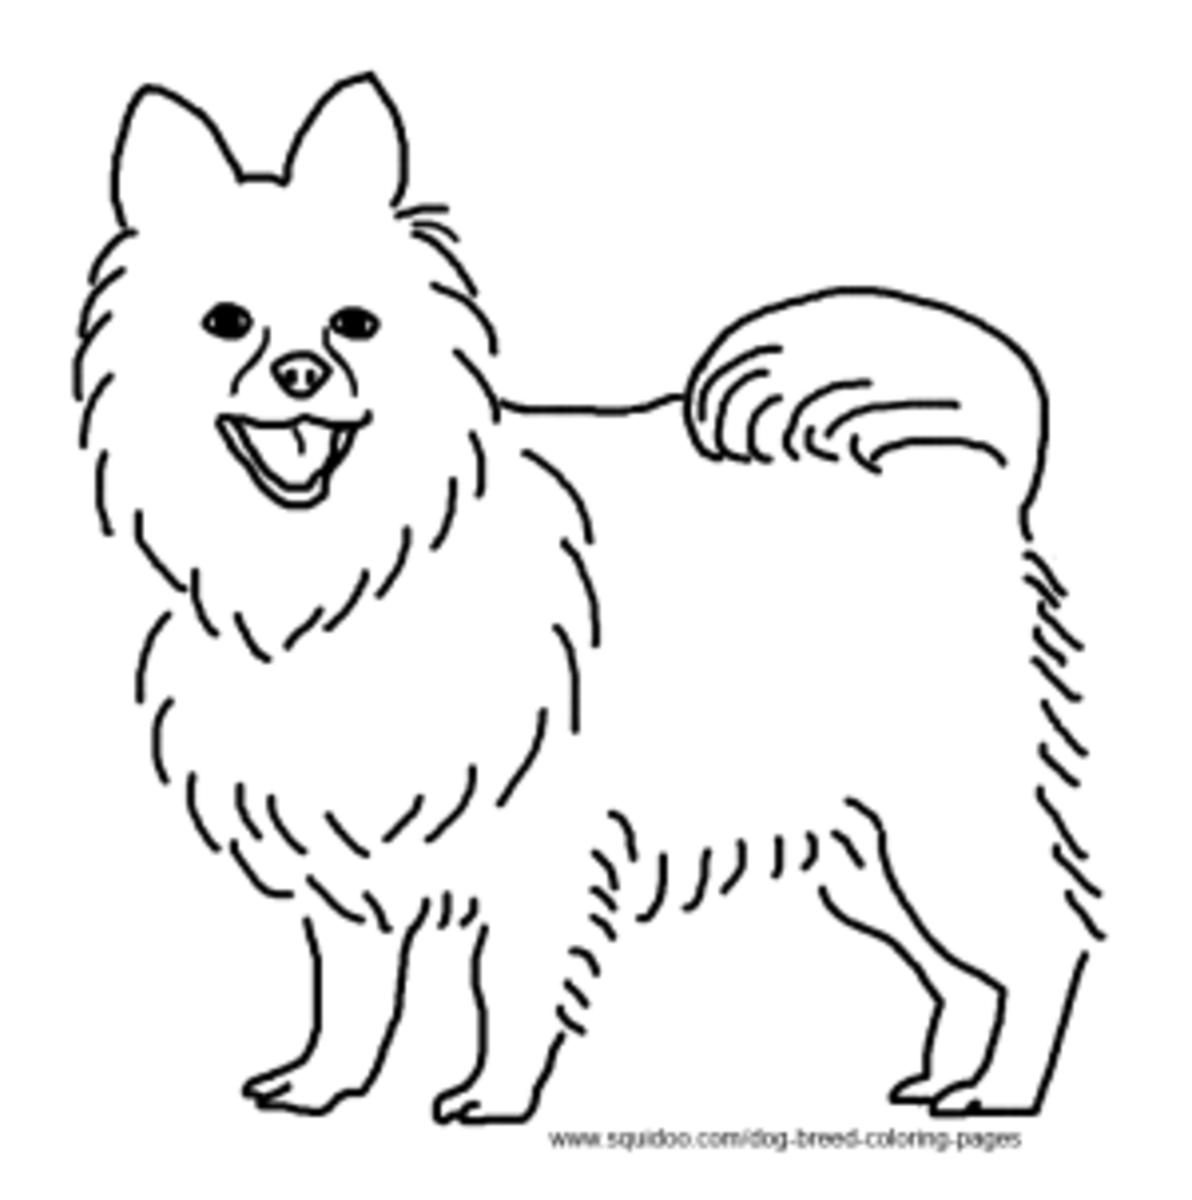 pomeranian coloring pages free - photo#17